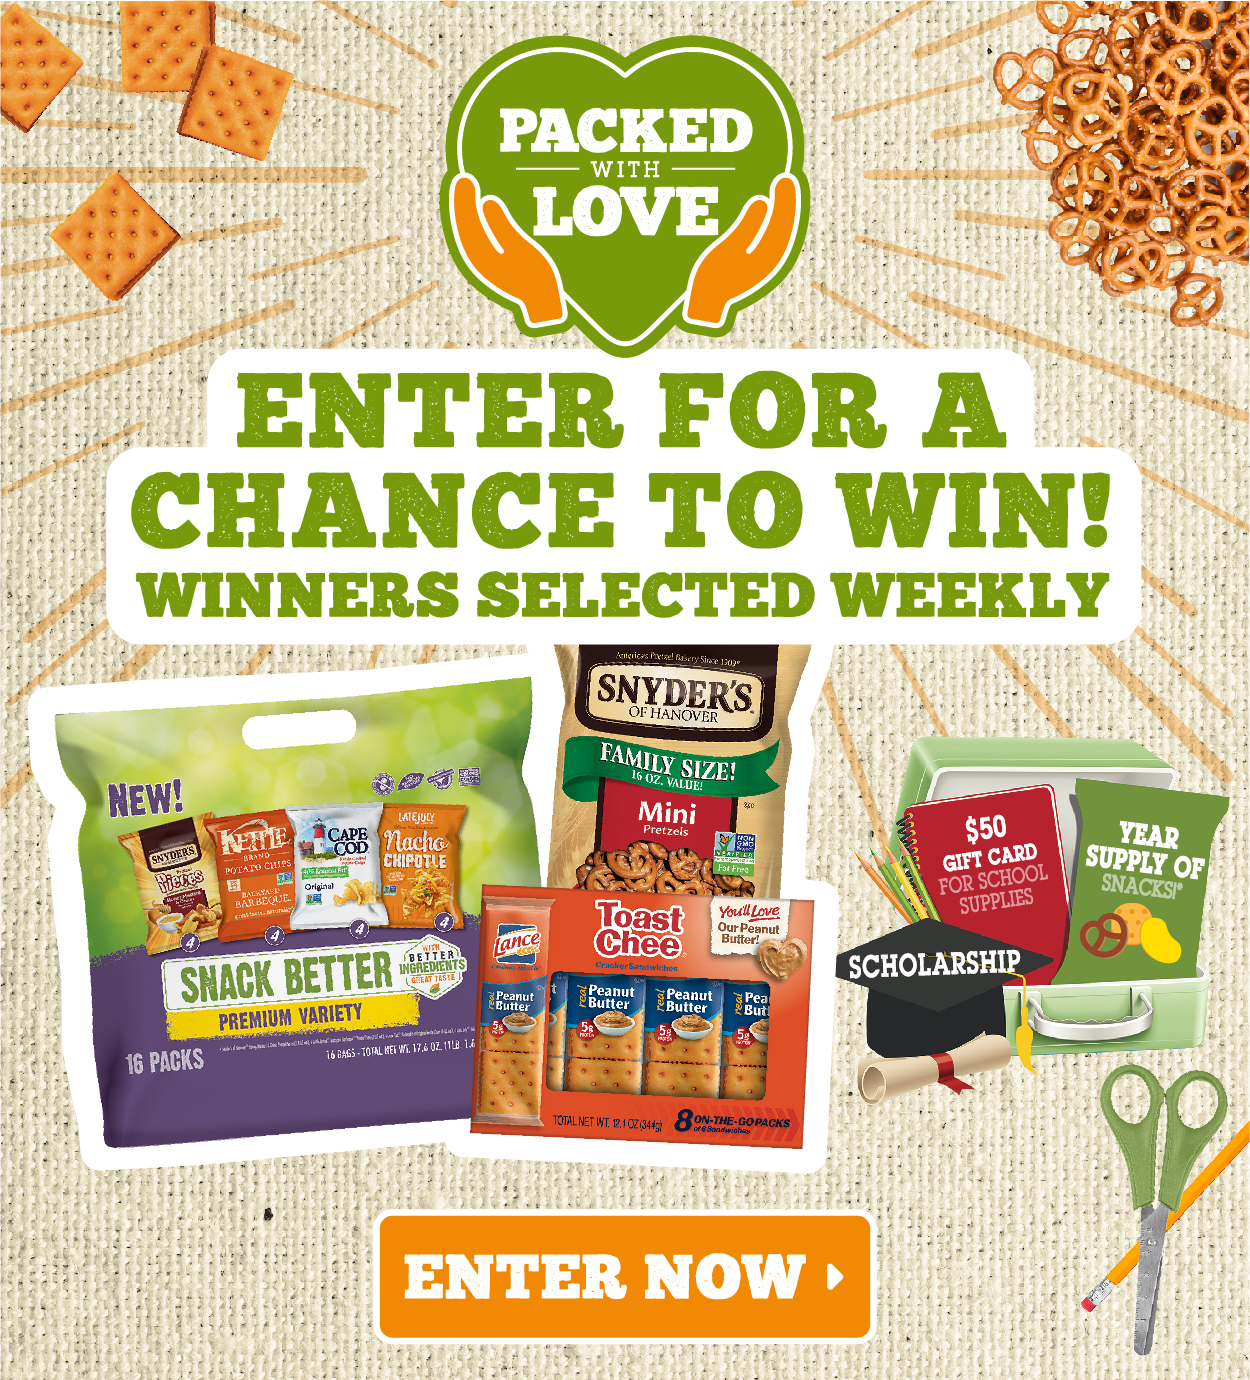 Enter the Snyder's Pack With Love Sweepstakes